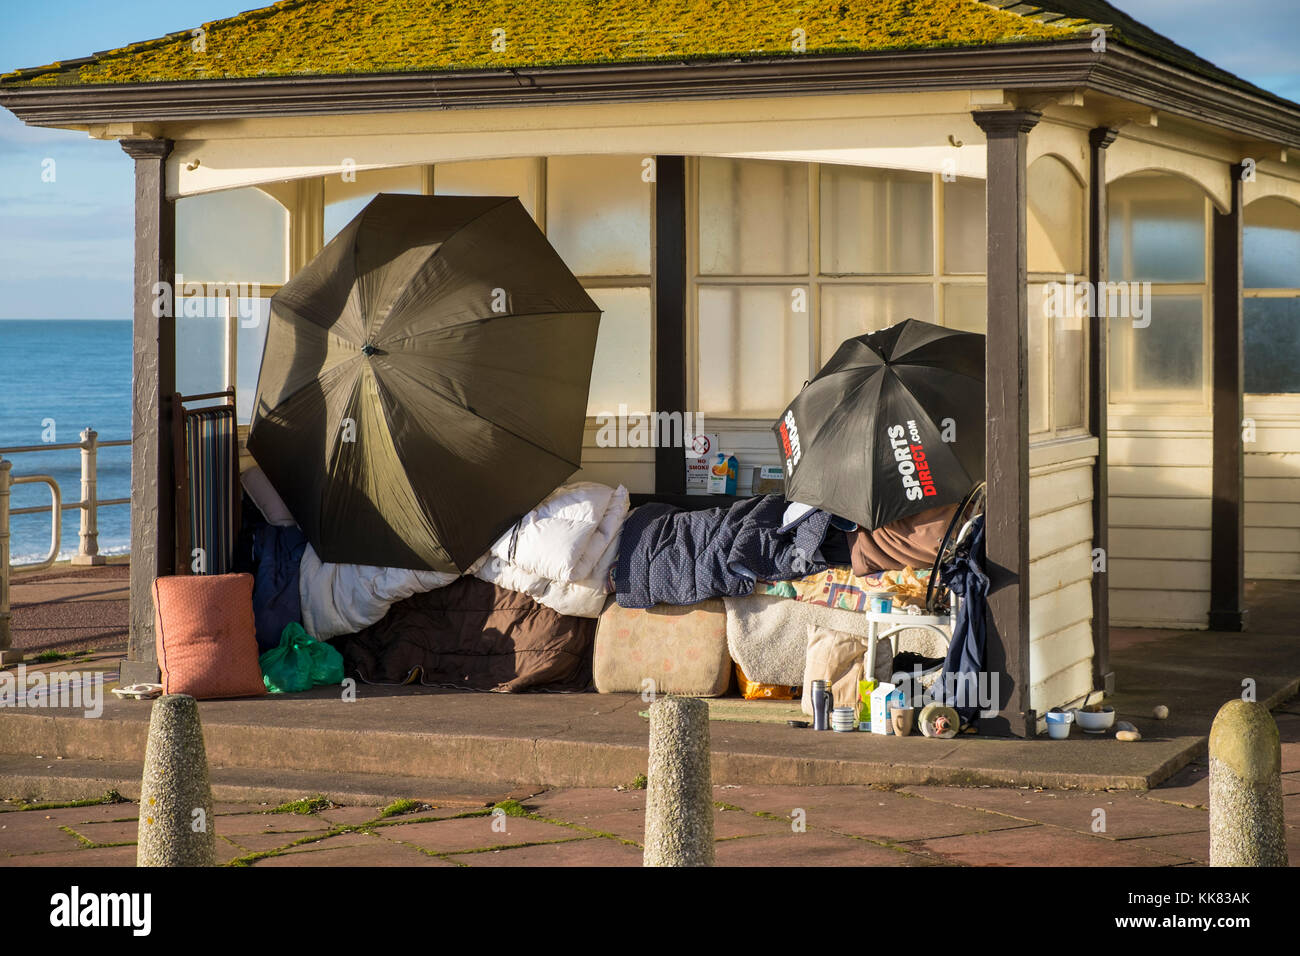 Homelessness in Hastings, East Sussex, UK - Stock Image